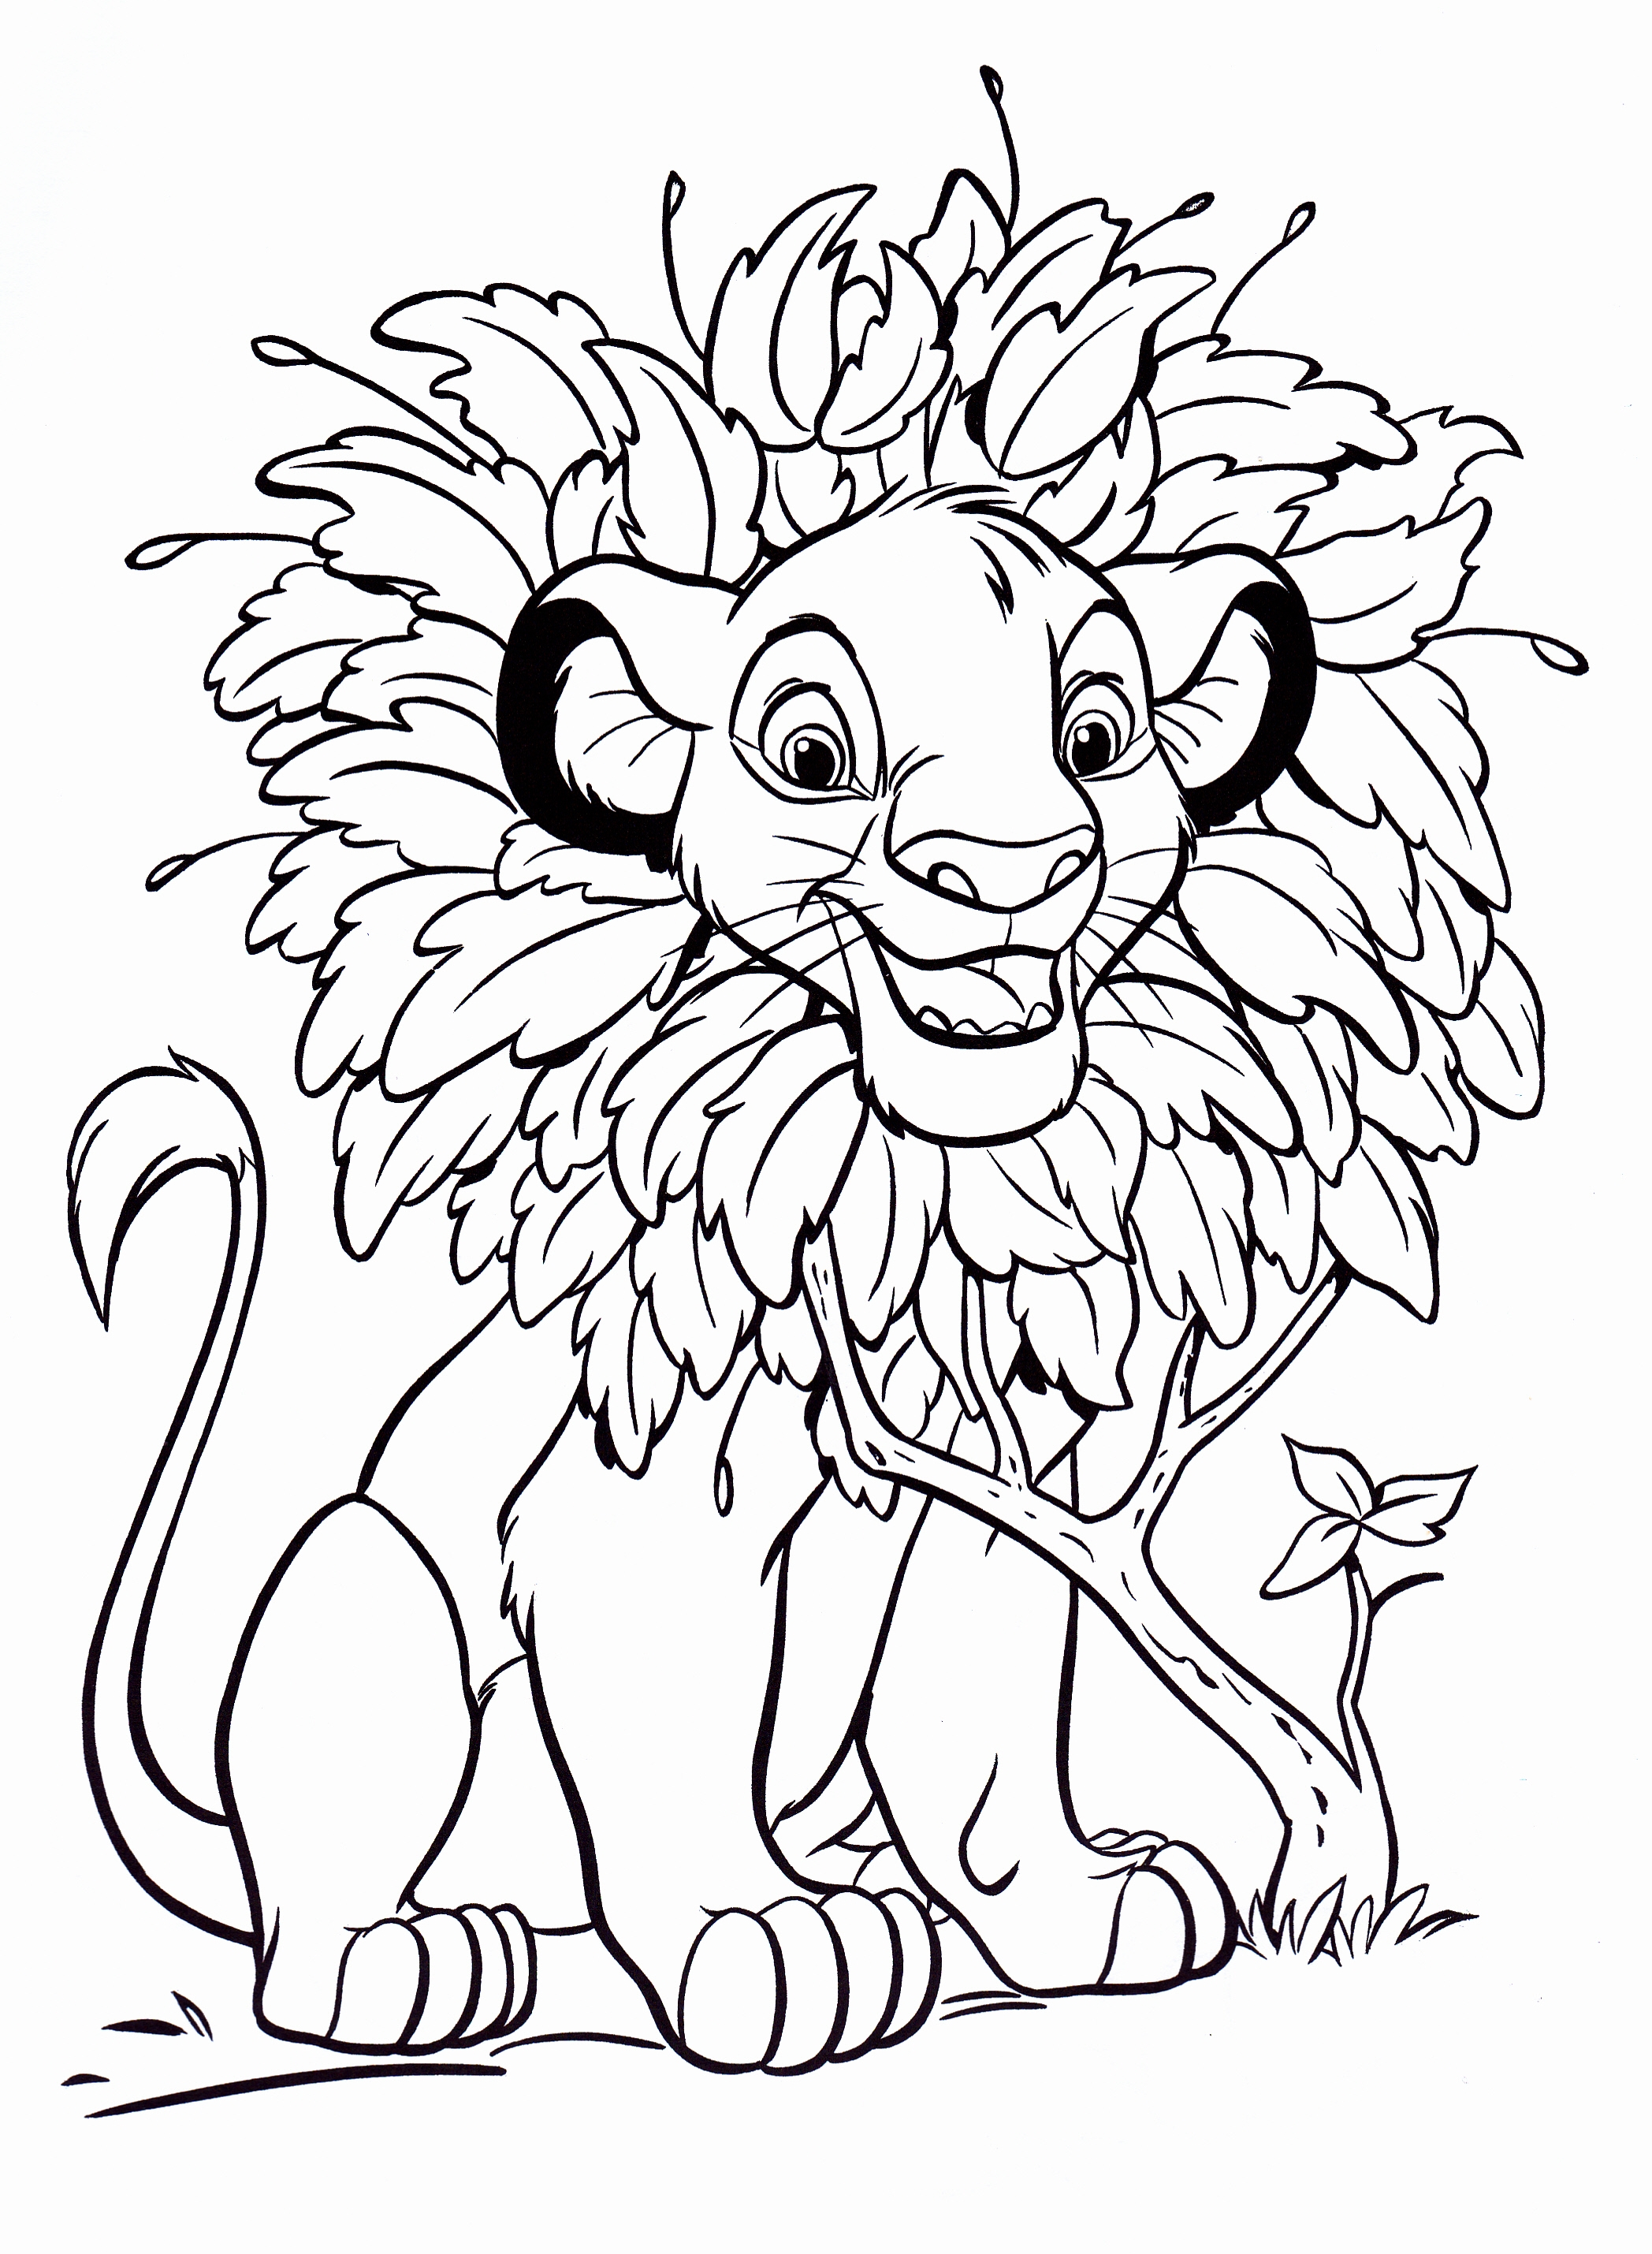 childrens coloring pages of disney - photo#10